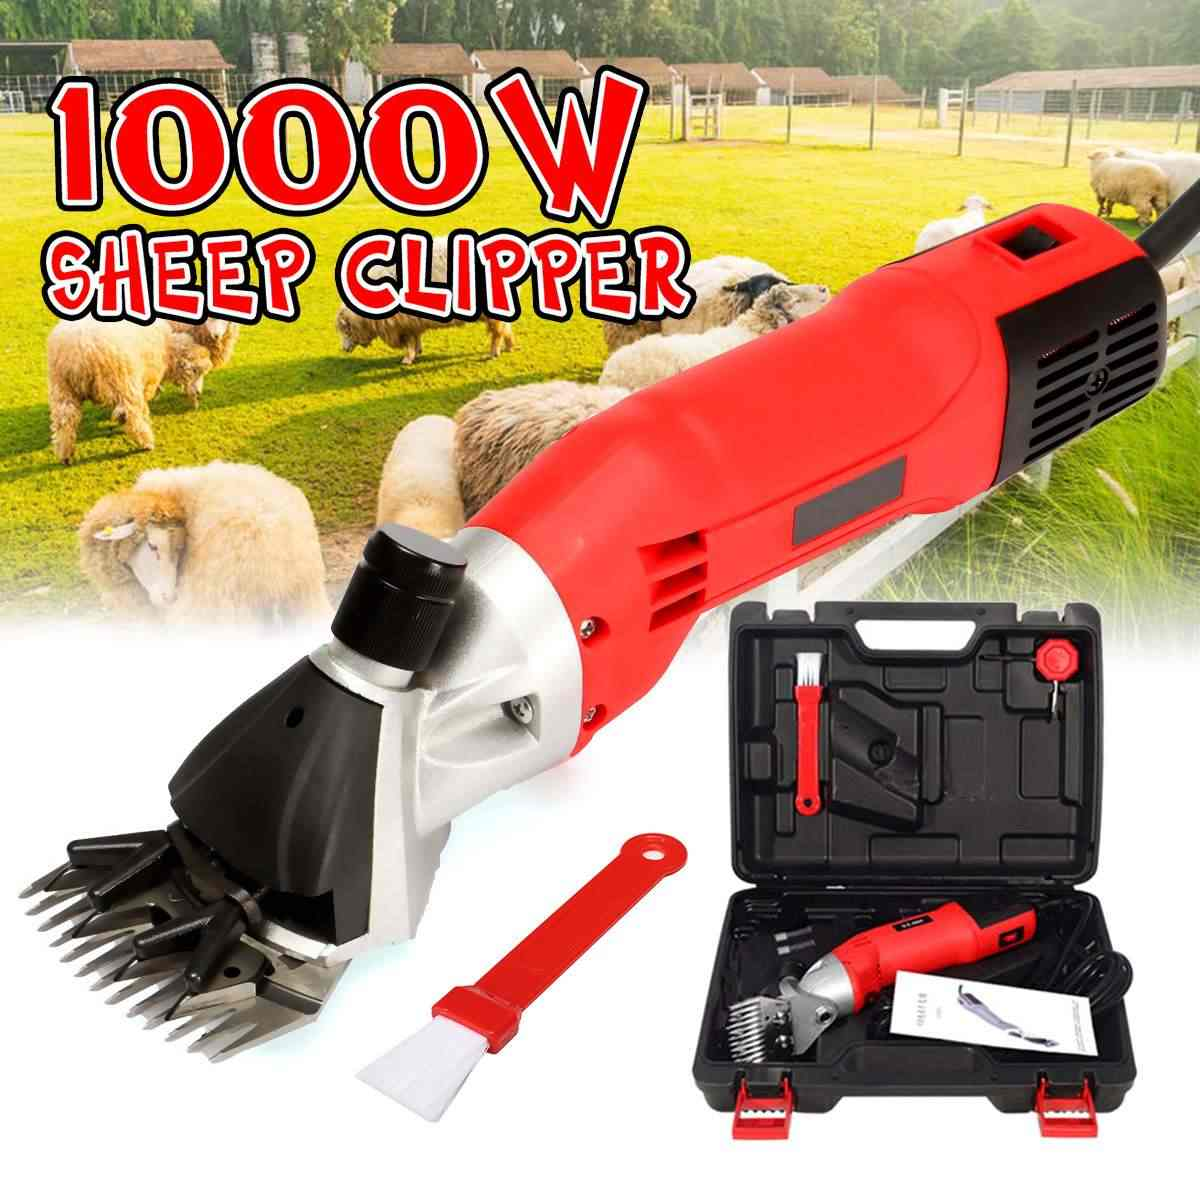 1000W 220V 6 Versnellingen Snelheid Elektrische Schapen Geiten Shearing Machine Clipper Farm Shears Cutter Wol Scissor Cut Machine met Doos